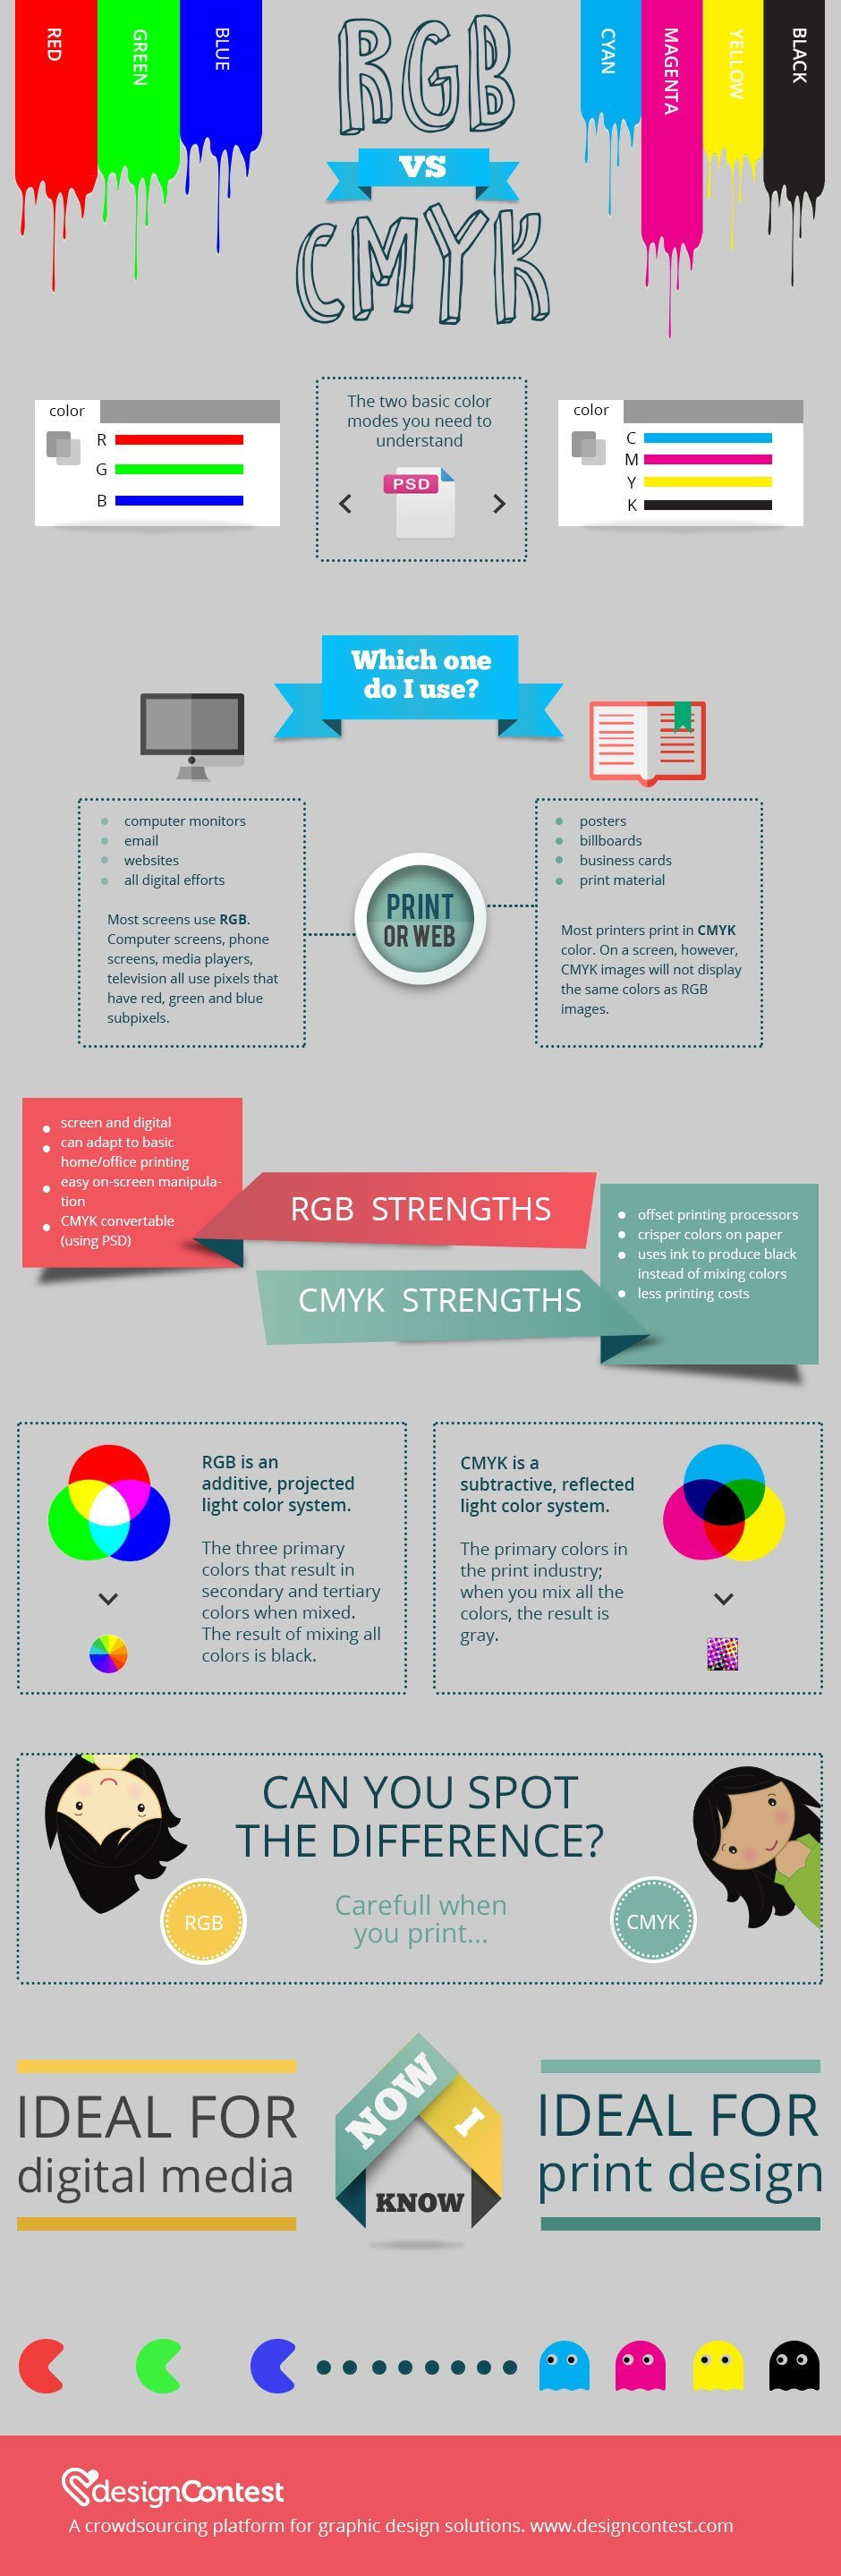 RGB vs CMYK color modes explained